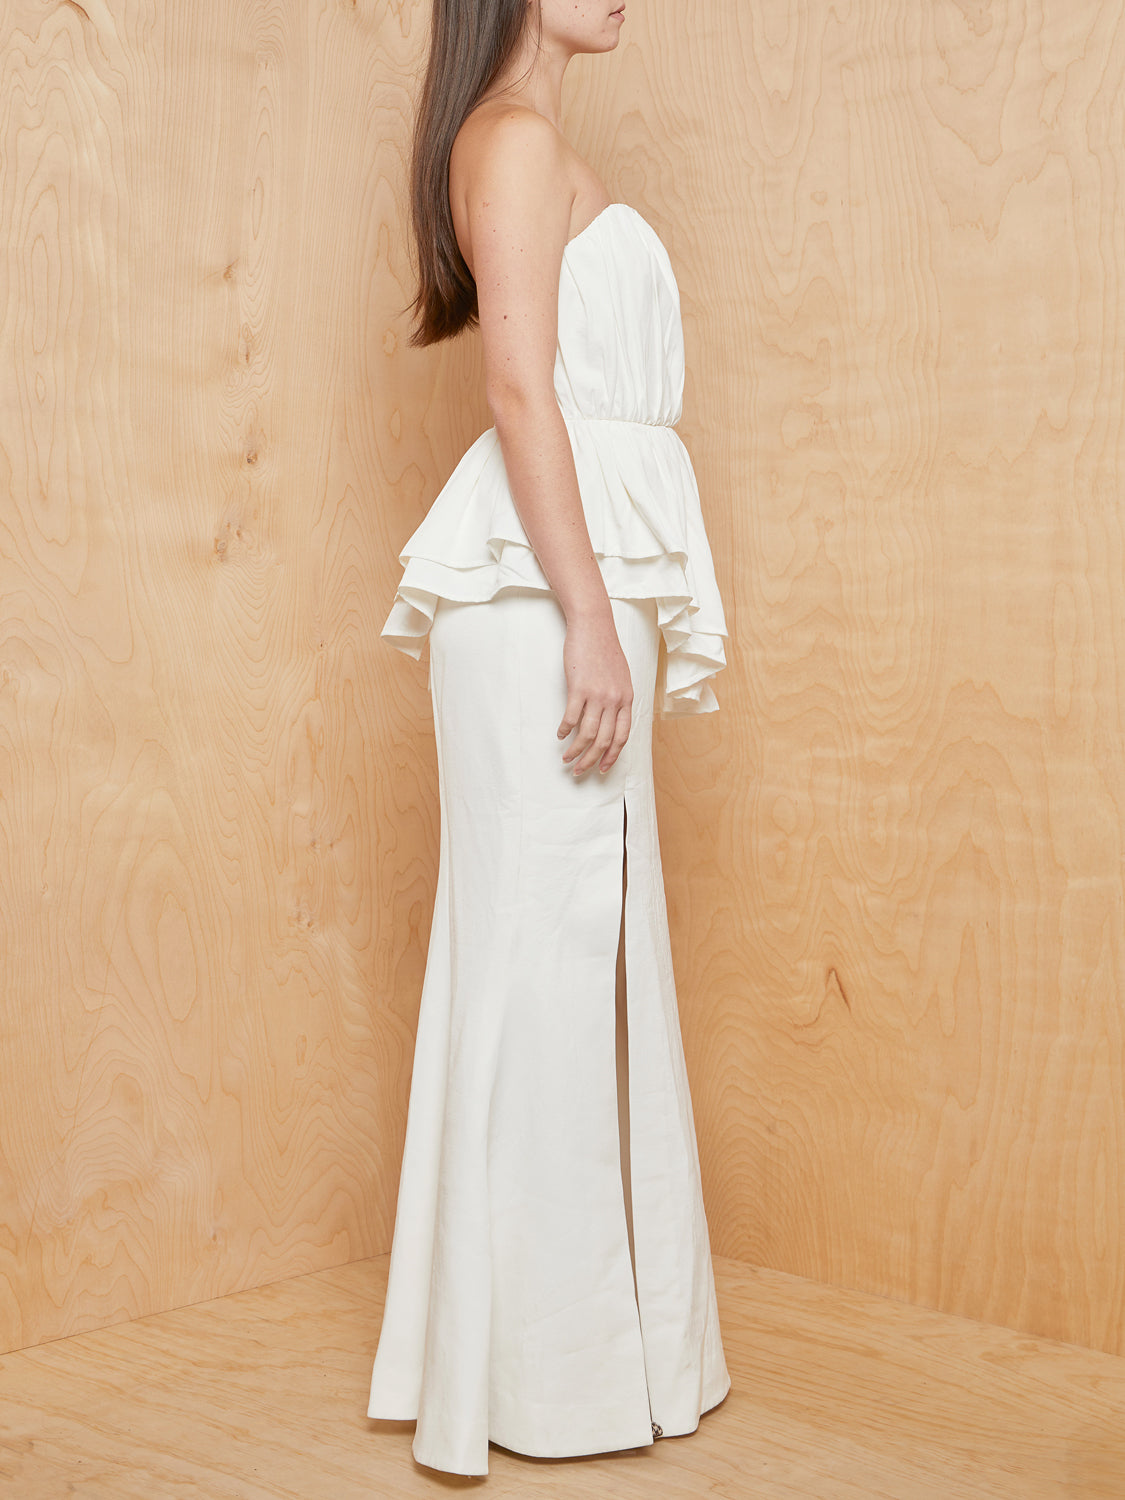 CM/EO Collective Ivory Silenced Gown